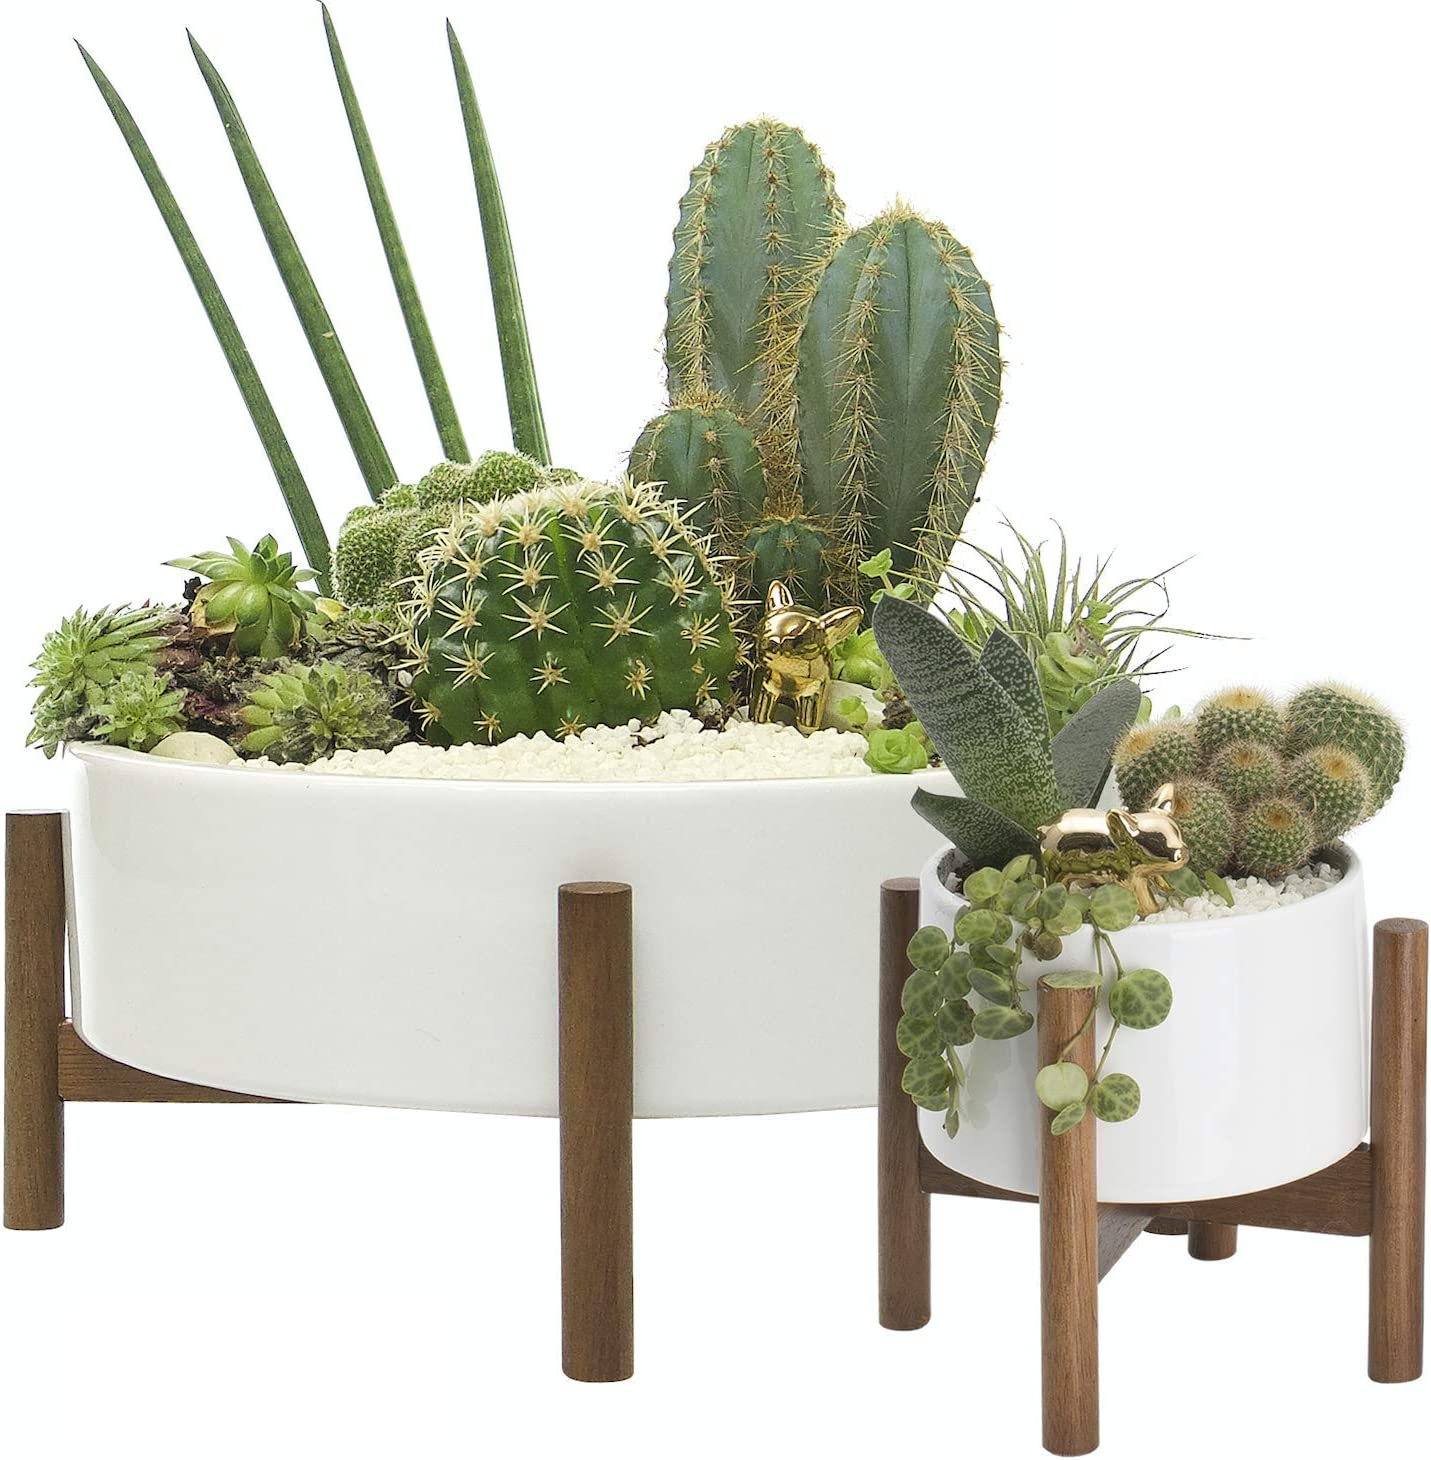 Set 2 Mid Century Modern Succulent Planter Large Bowl and Midi, Pots with Wood Stand and Hidden Saucer, Round Ceramic White Planters, Cactus and Plant Container with Drainage, Indoor